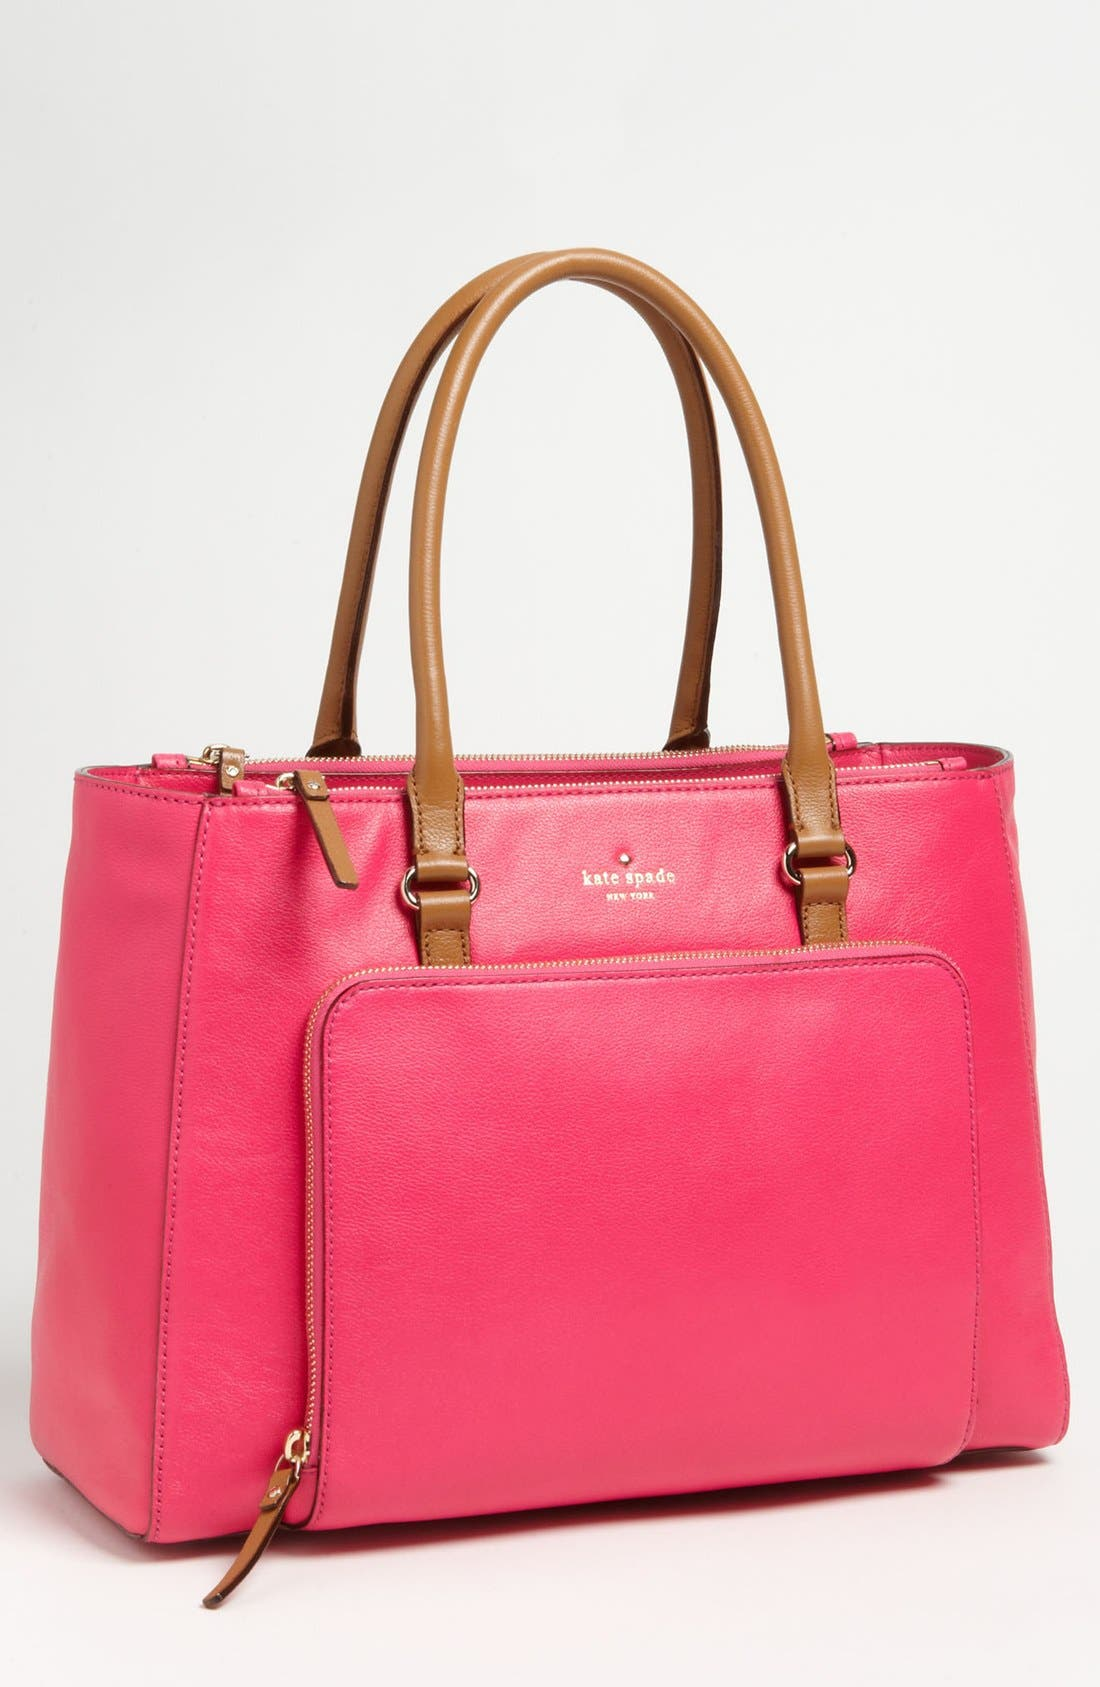 Alternate Image 1 Selected - kate spade new york 'hester street - ronda' tote